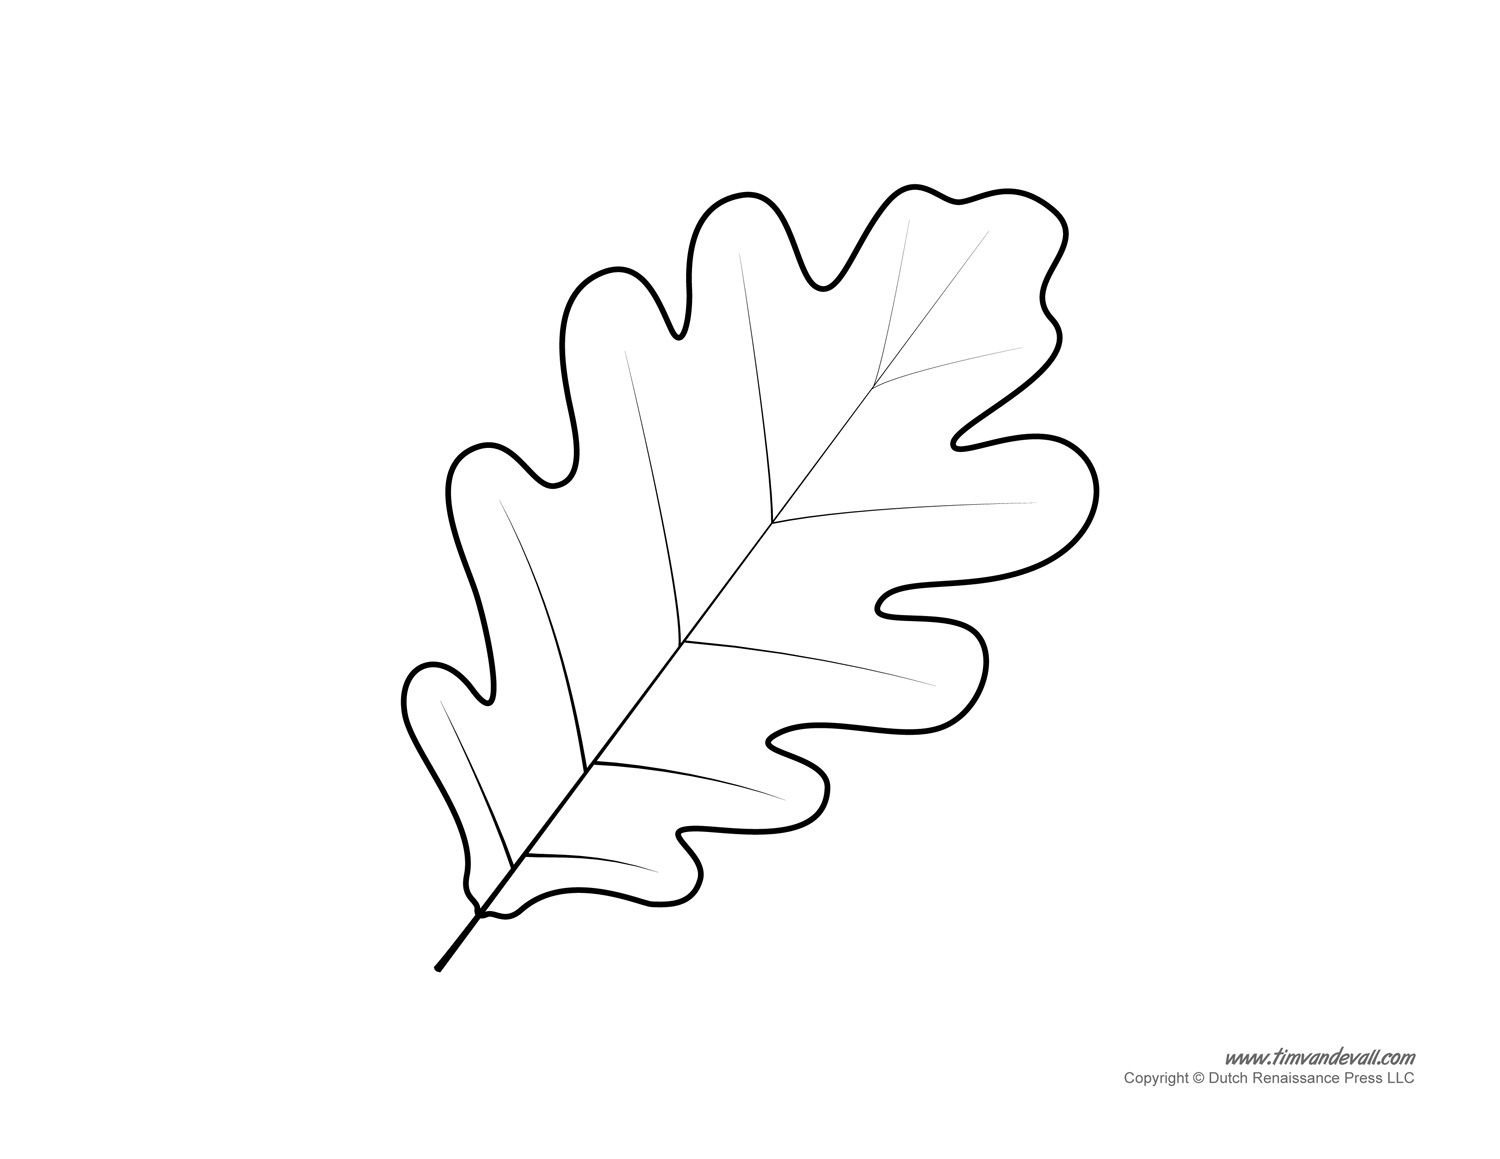 Oak Leaf Pattern. A High Resolution Version Of The Leaf Drawing Will - Free Printable Oak Leaf Patterns